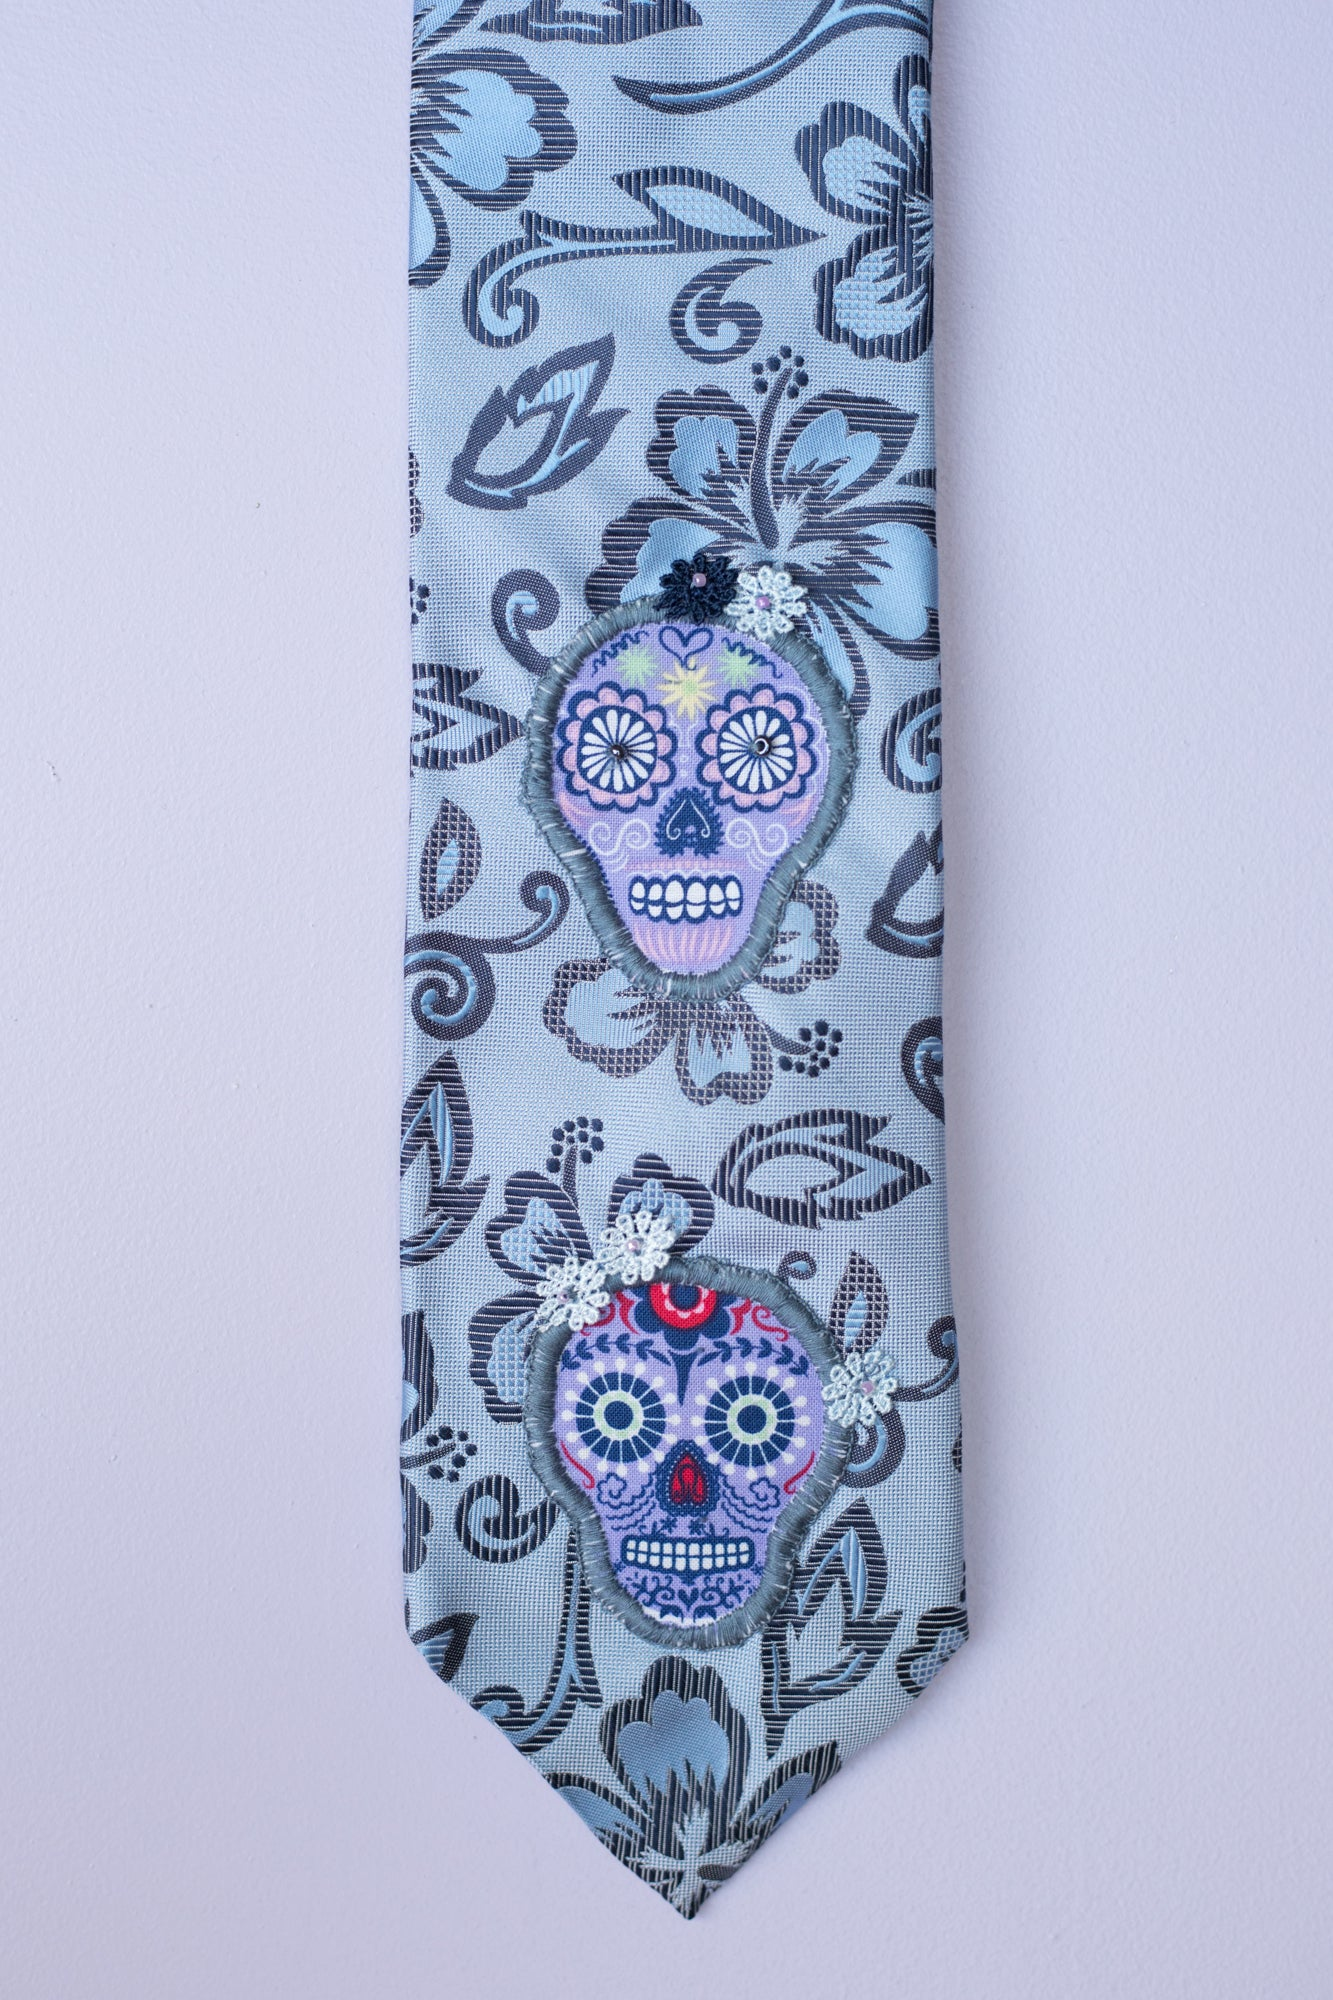 Silk tie in blue hues with sugar skulls